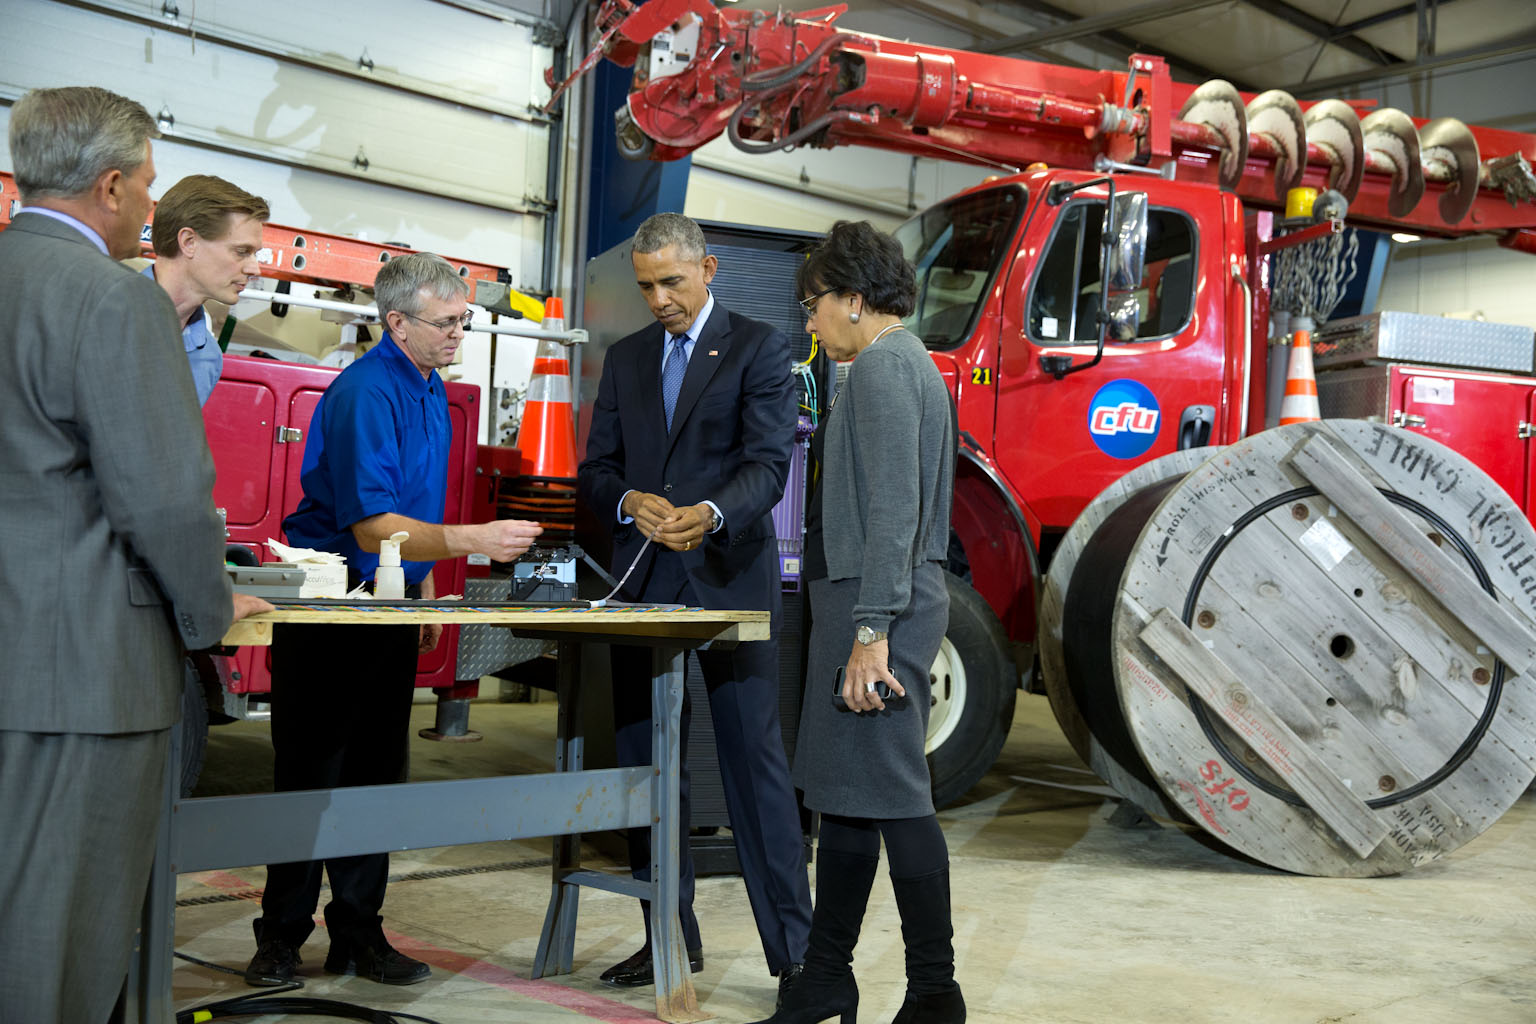 President Obama and Secretary Pritzker views demonstration of fiber optic spicing at Cedar Falls Utilities